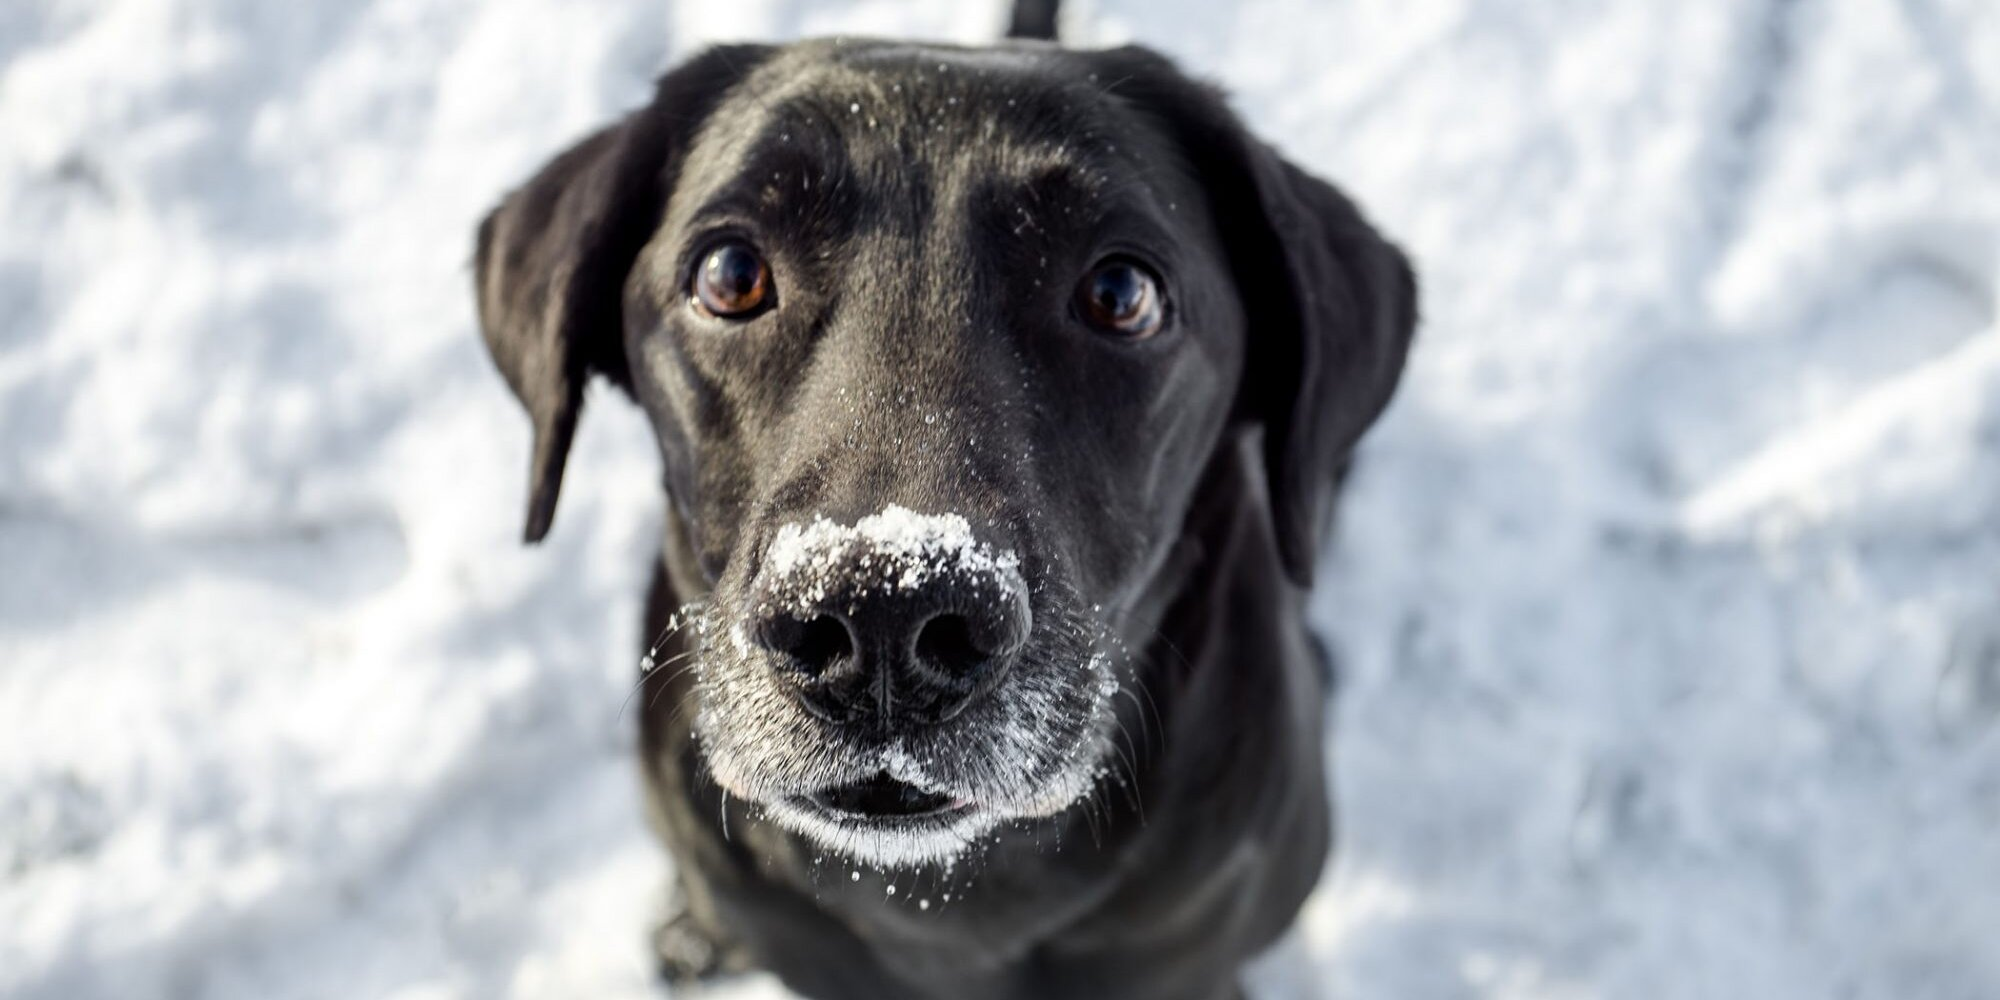 Brrr: How to Keep Your Dog Safe, Warm During Winter